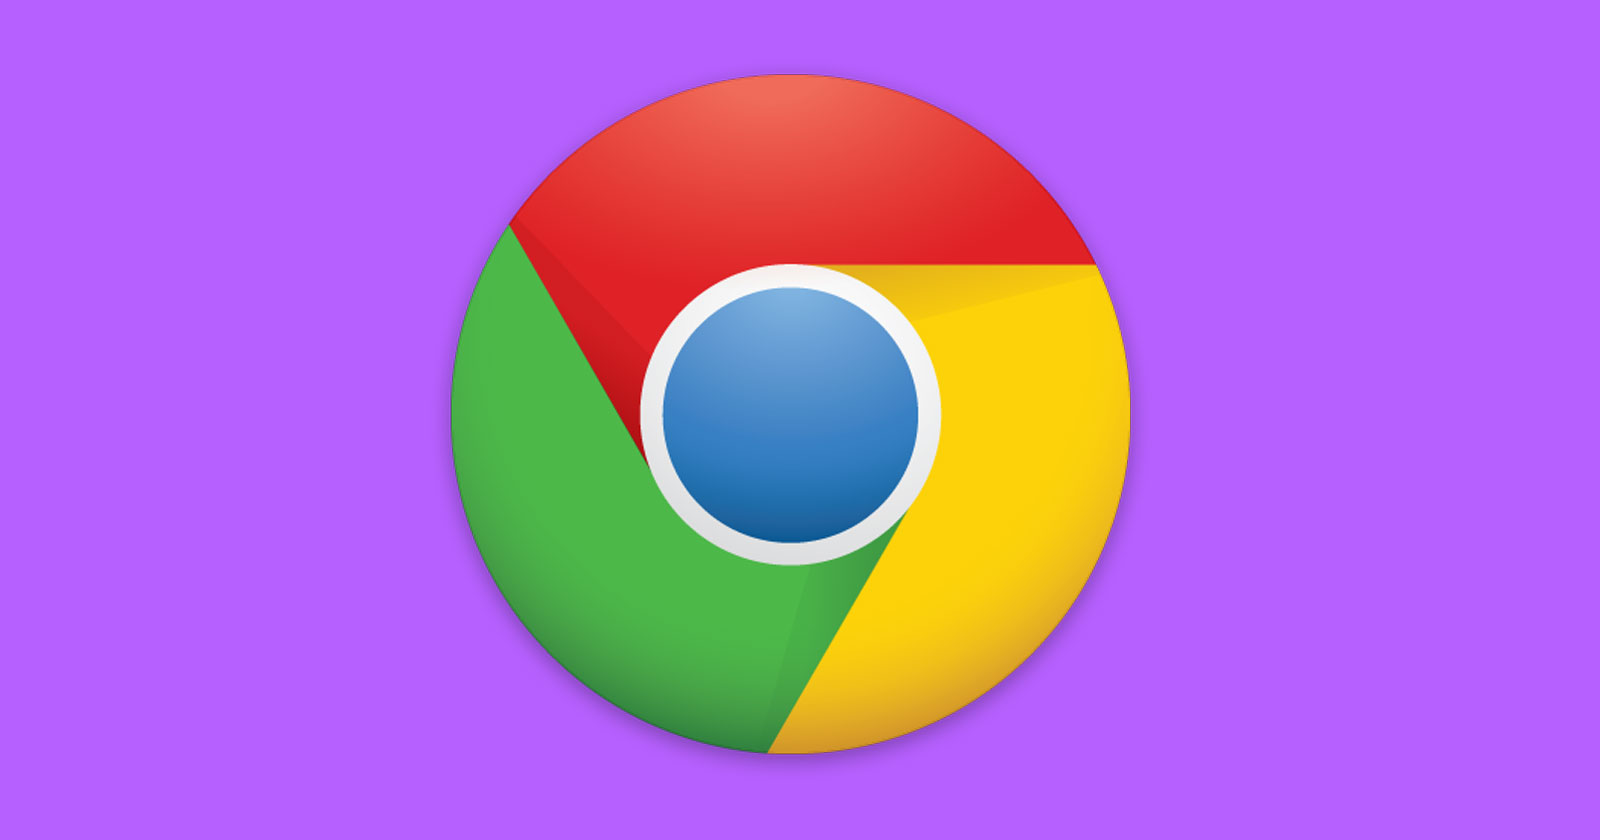 Chrome 86 Will Crack Down Hard on Insecure Forms - Search Engine Journal